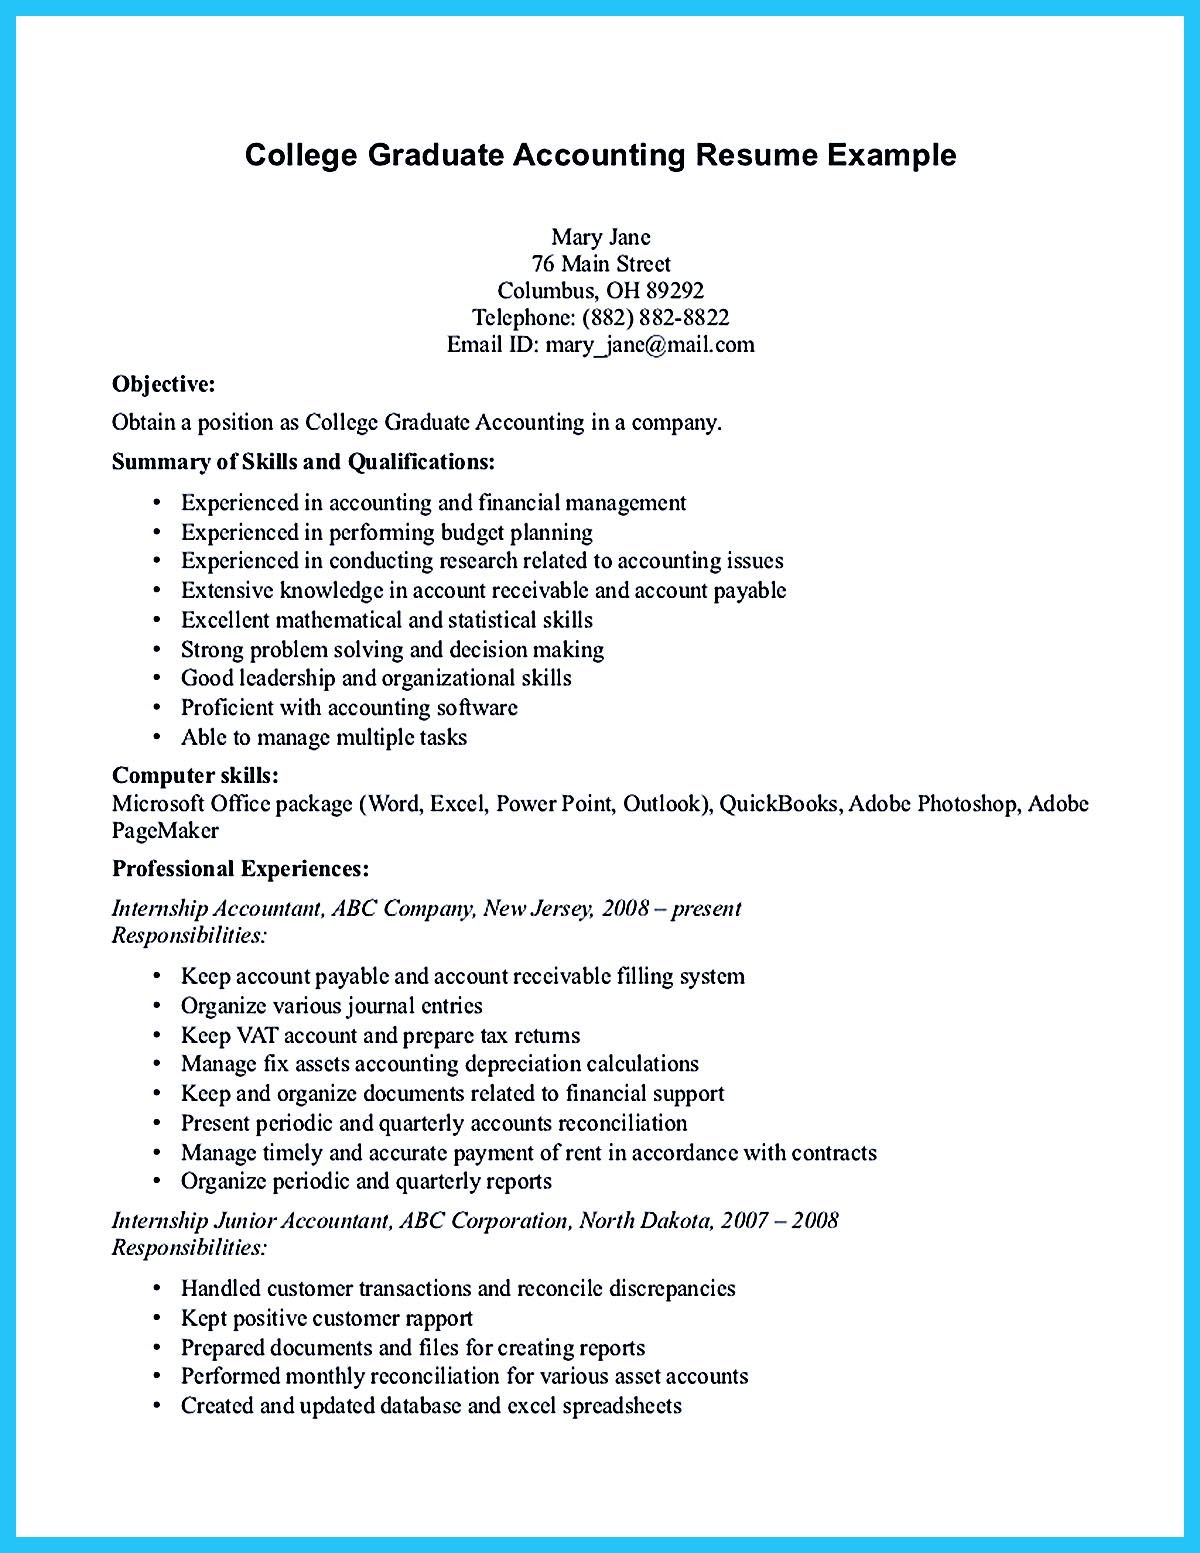 Accounts Receivable Resume Accounting Student Resume Here Presents How The Resume Of